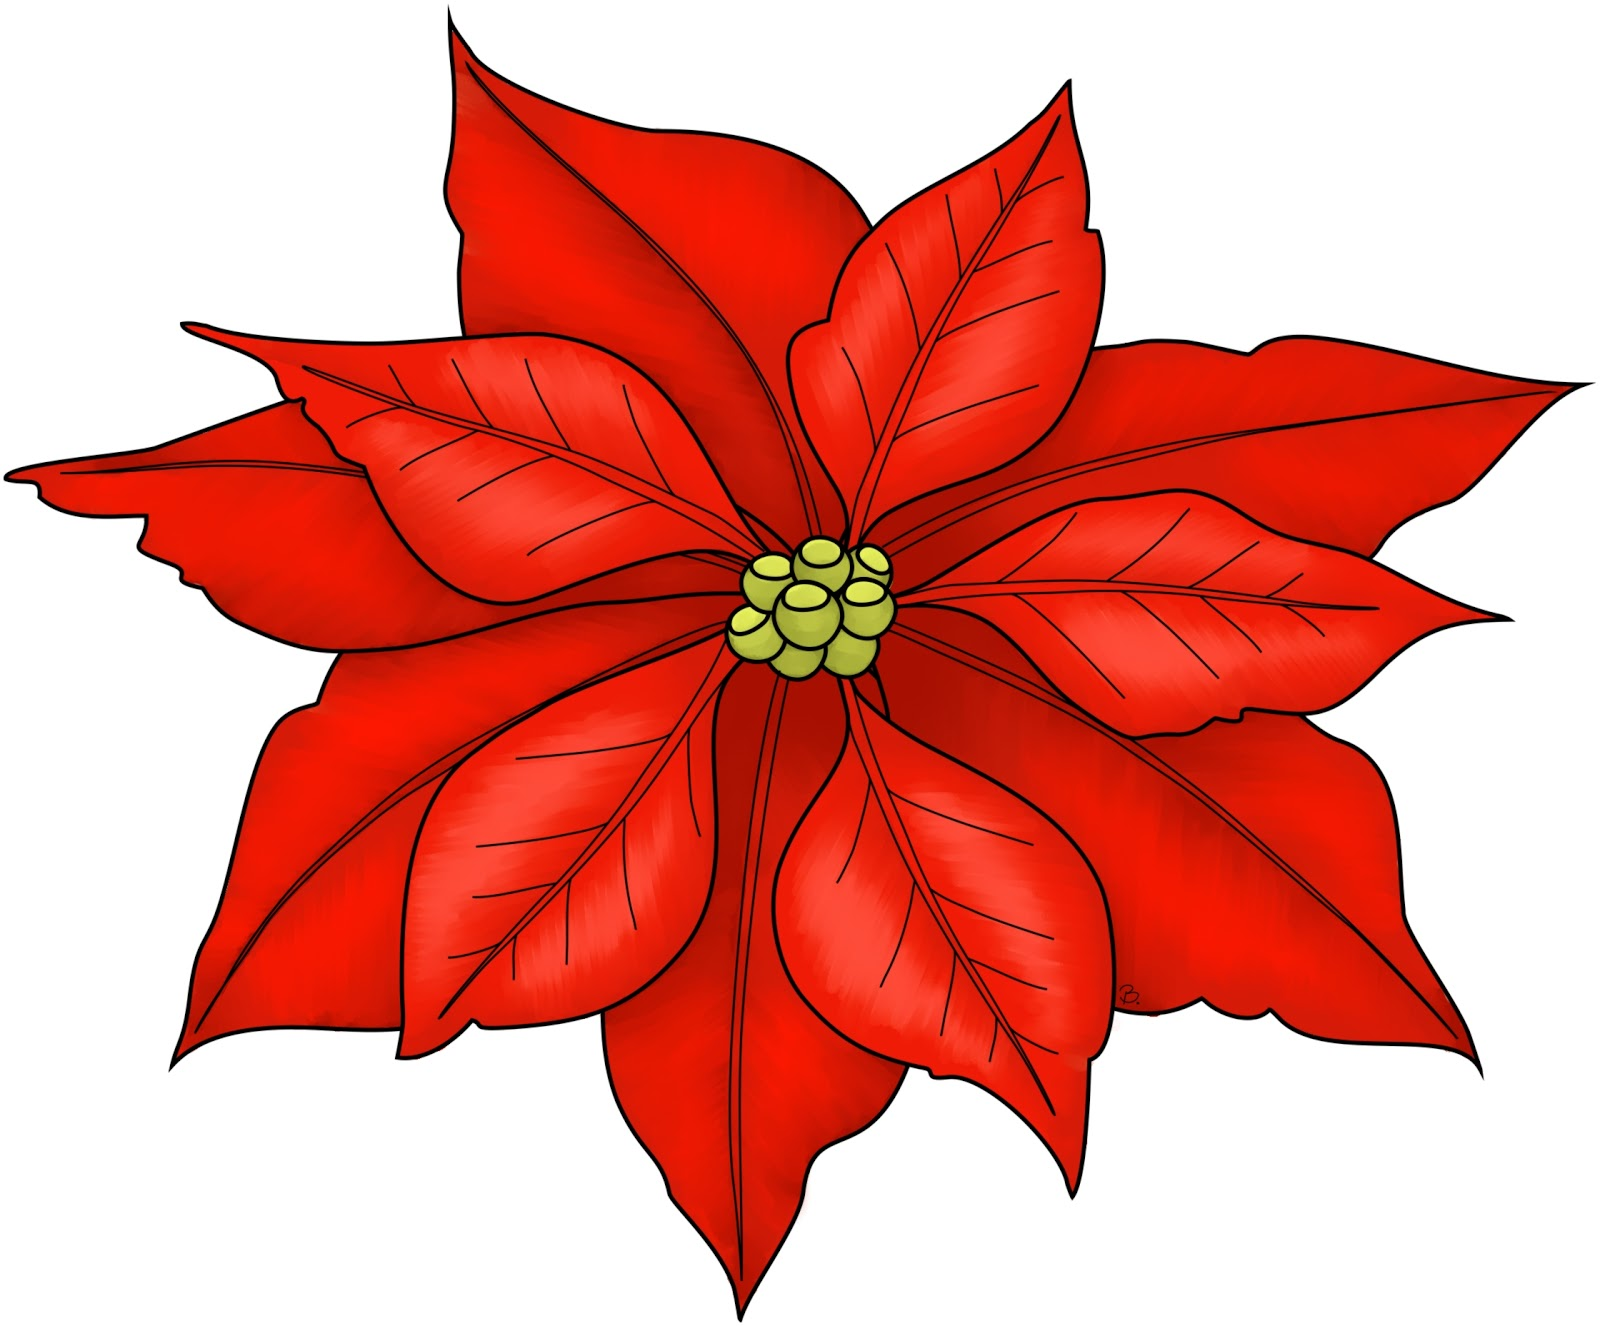 1000+ images about Christmas flower on Pinterest.